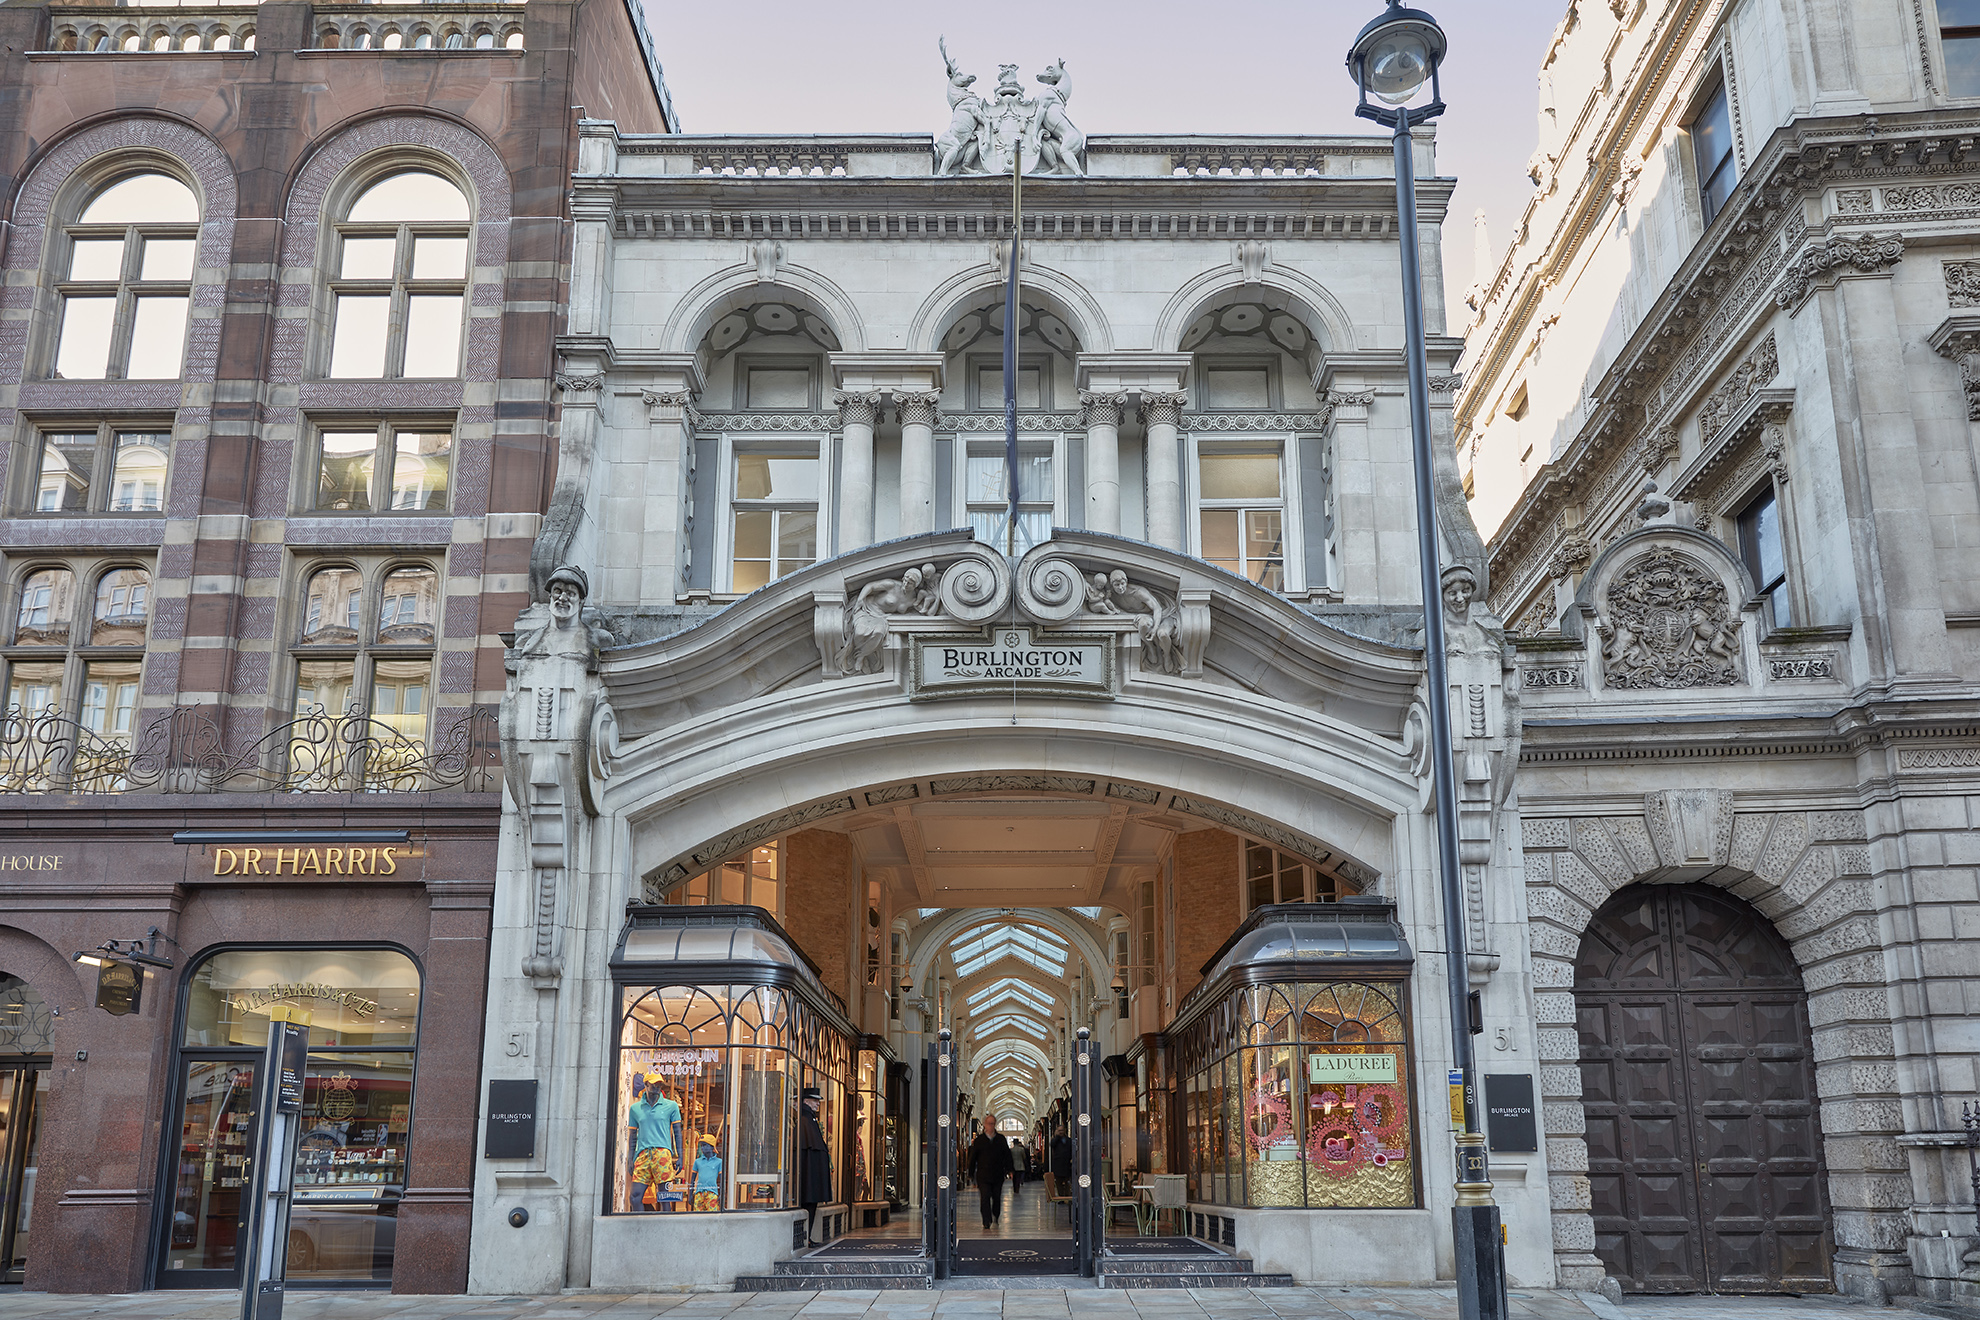 BurlingtonArcade14-01-19-2275.jpg